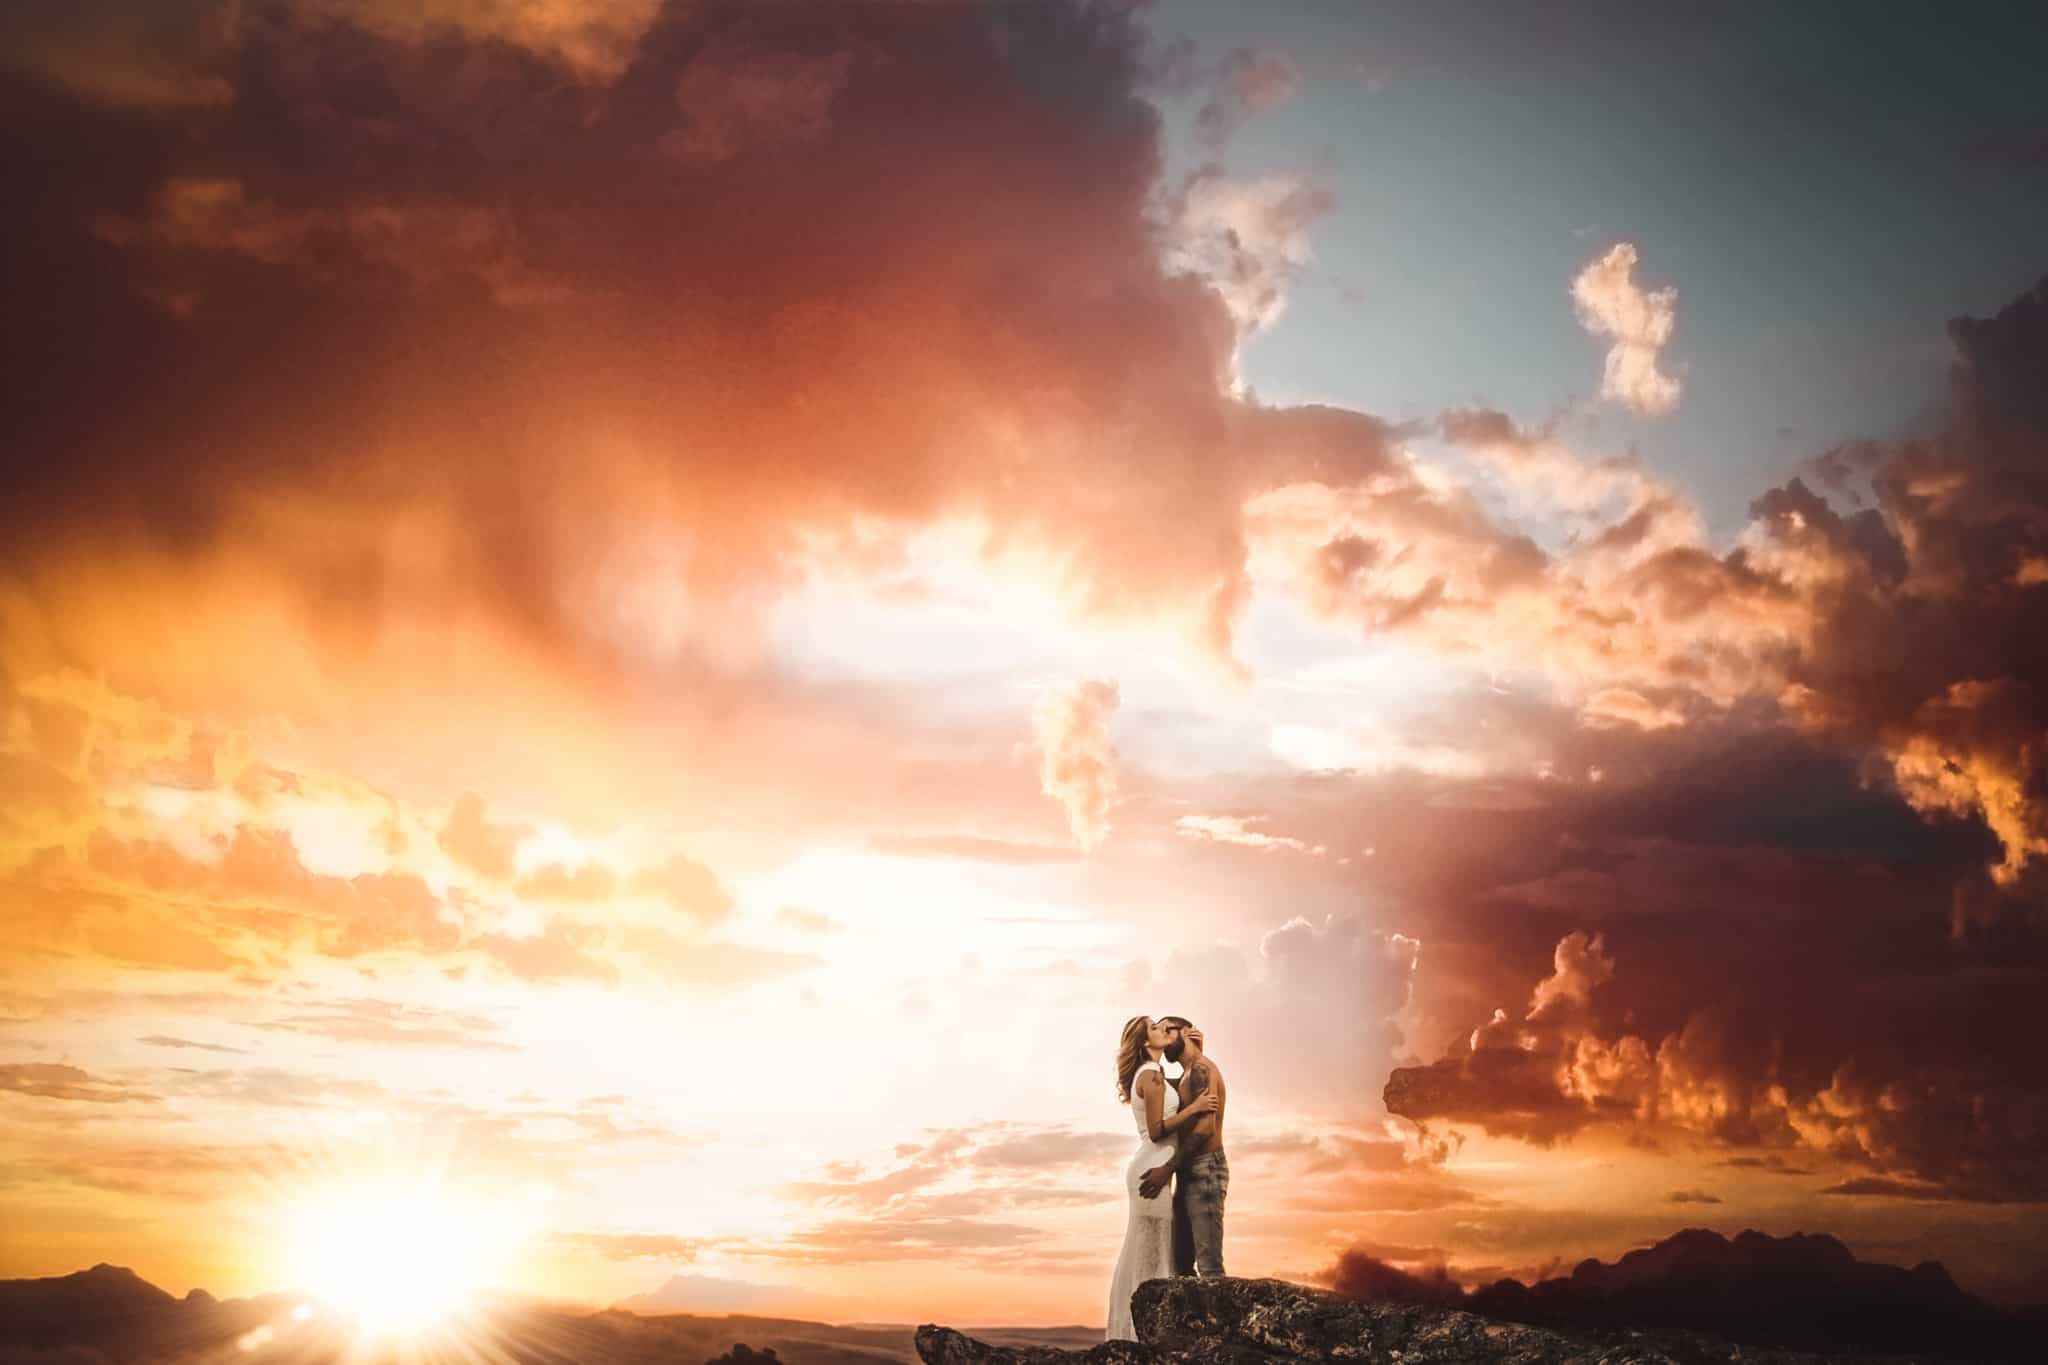 Couple Poses in front of an epic sky